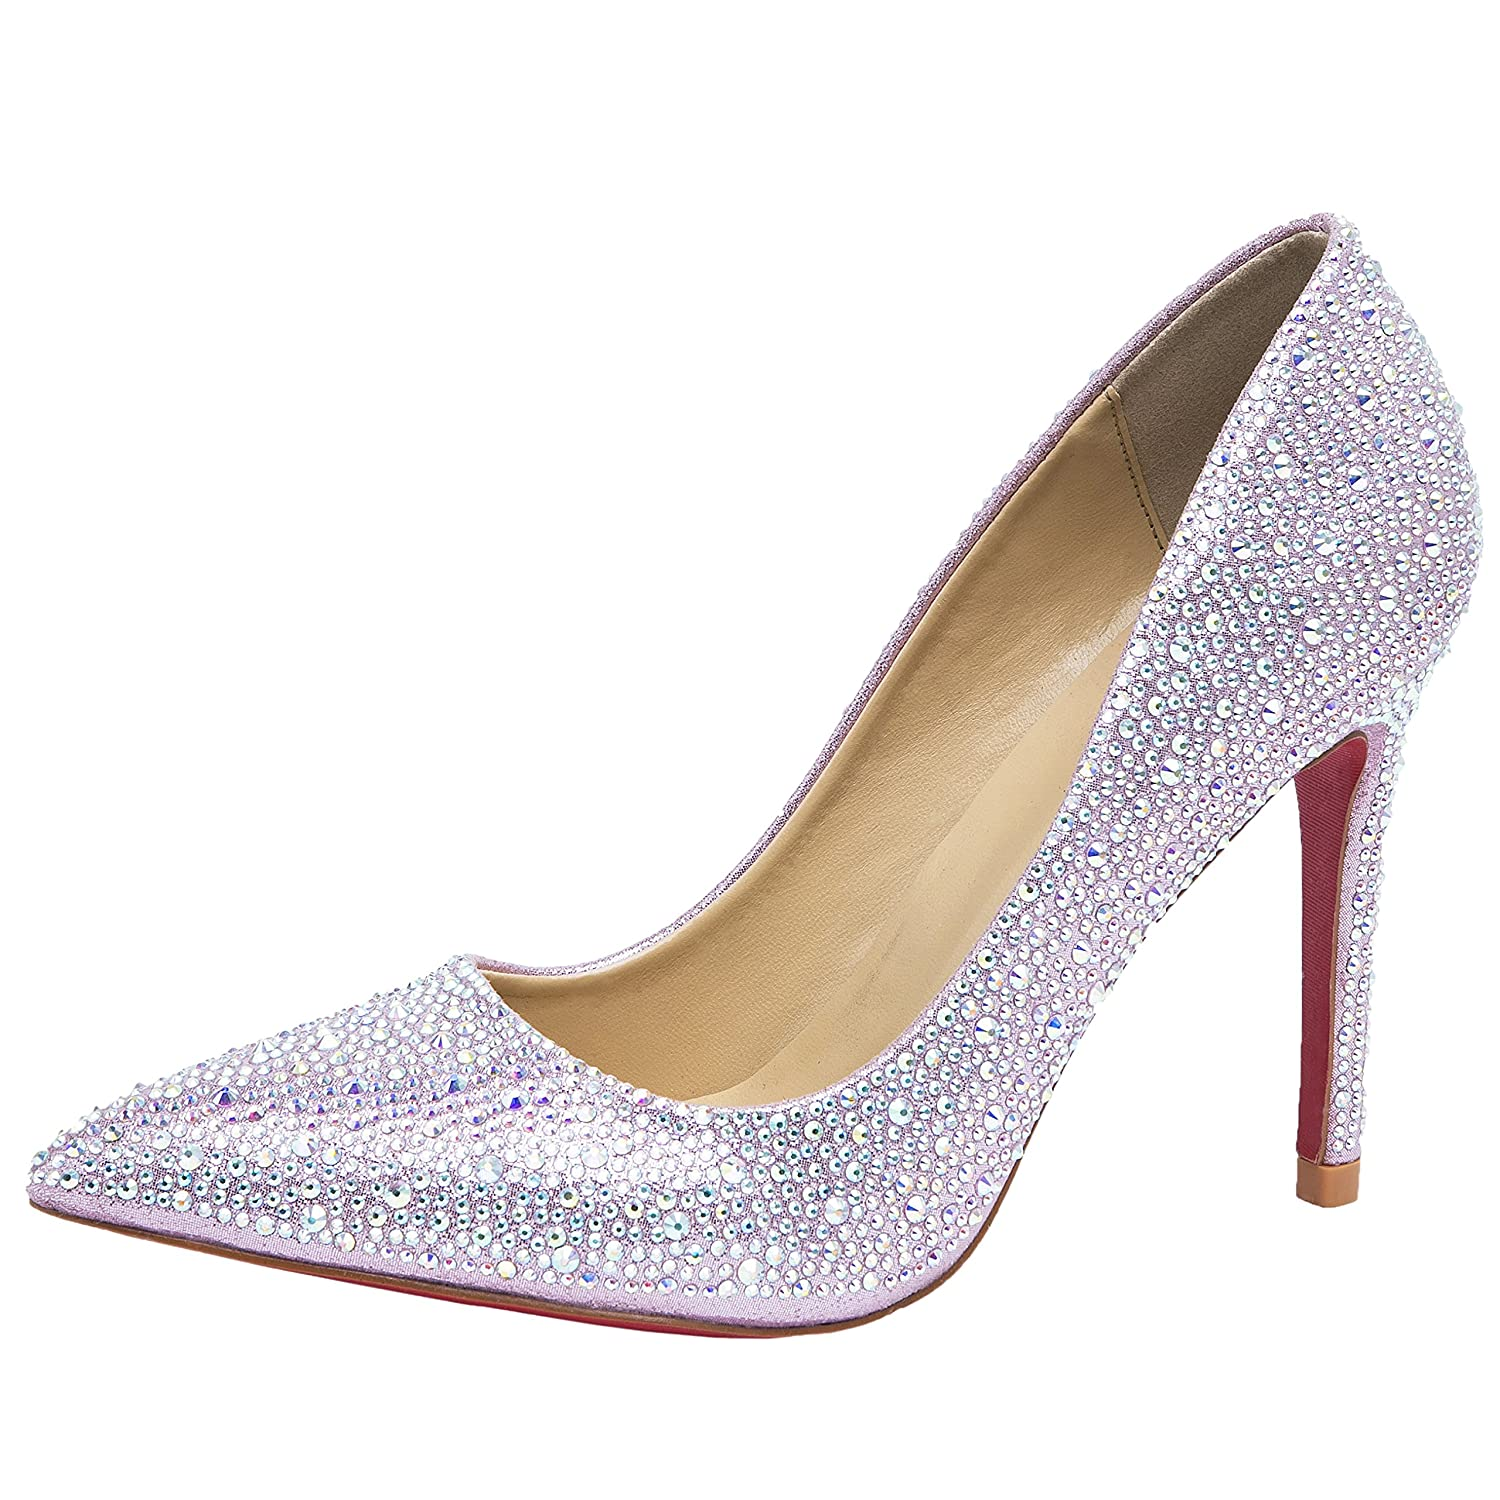 sports shoes 296b6 c8395 HOOH Women's Pumps Bling Crystal Pointed Toe Red Sole High ...